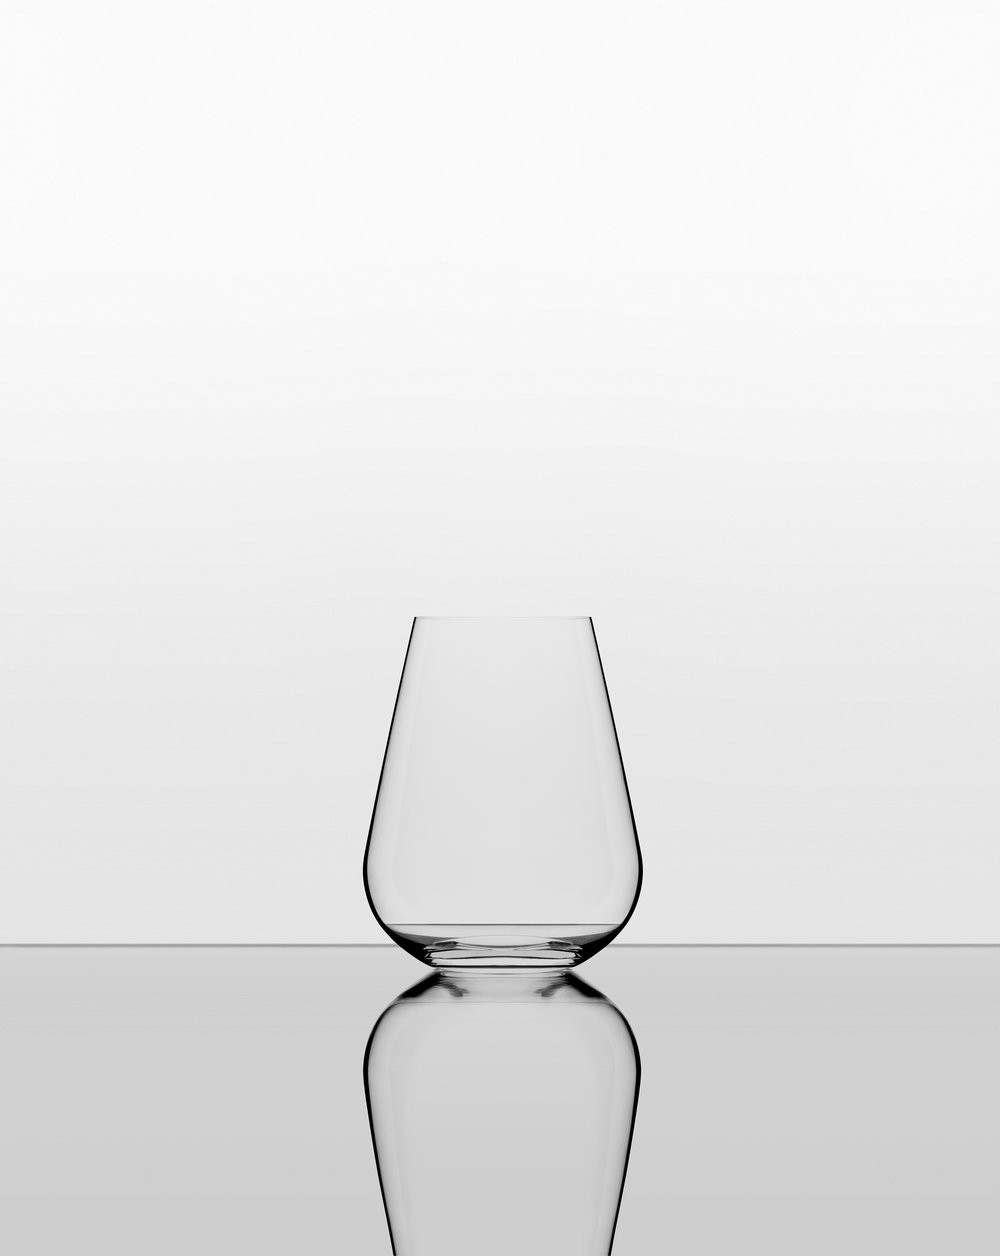 The Water Glass. - It is always wise to drink water with your wine, and this stemless glass fits perfectly en suite with the Wine Glass to create a beautiful table setting.This tumbler is exactly the same shape as the Wine Glass, so if you do choose to use this stemless version as your wine glass you will still have the benefits of the perfect generous tulip shape.